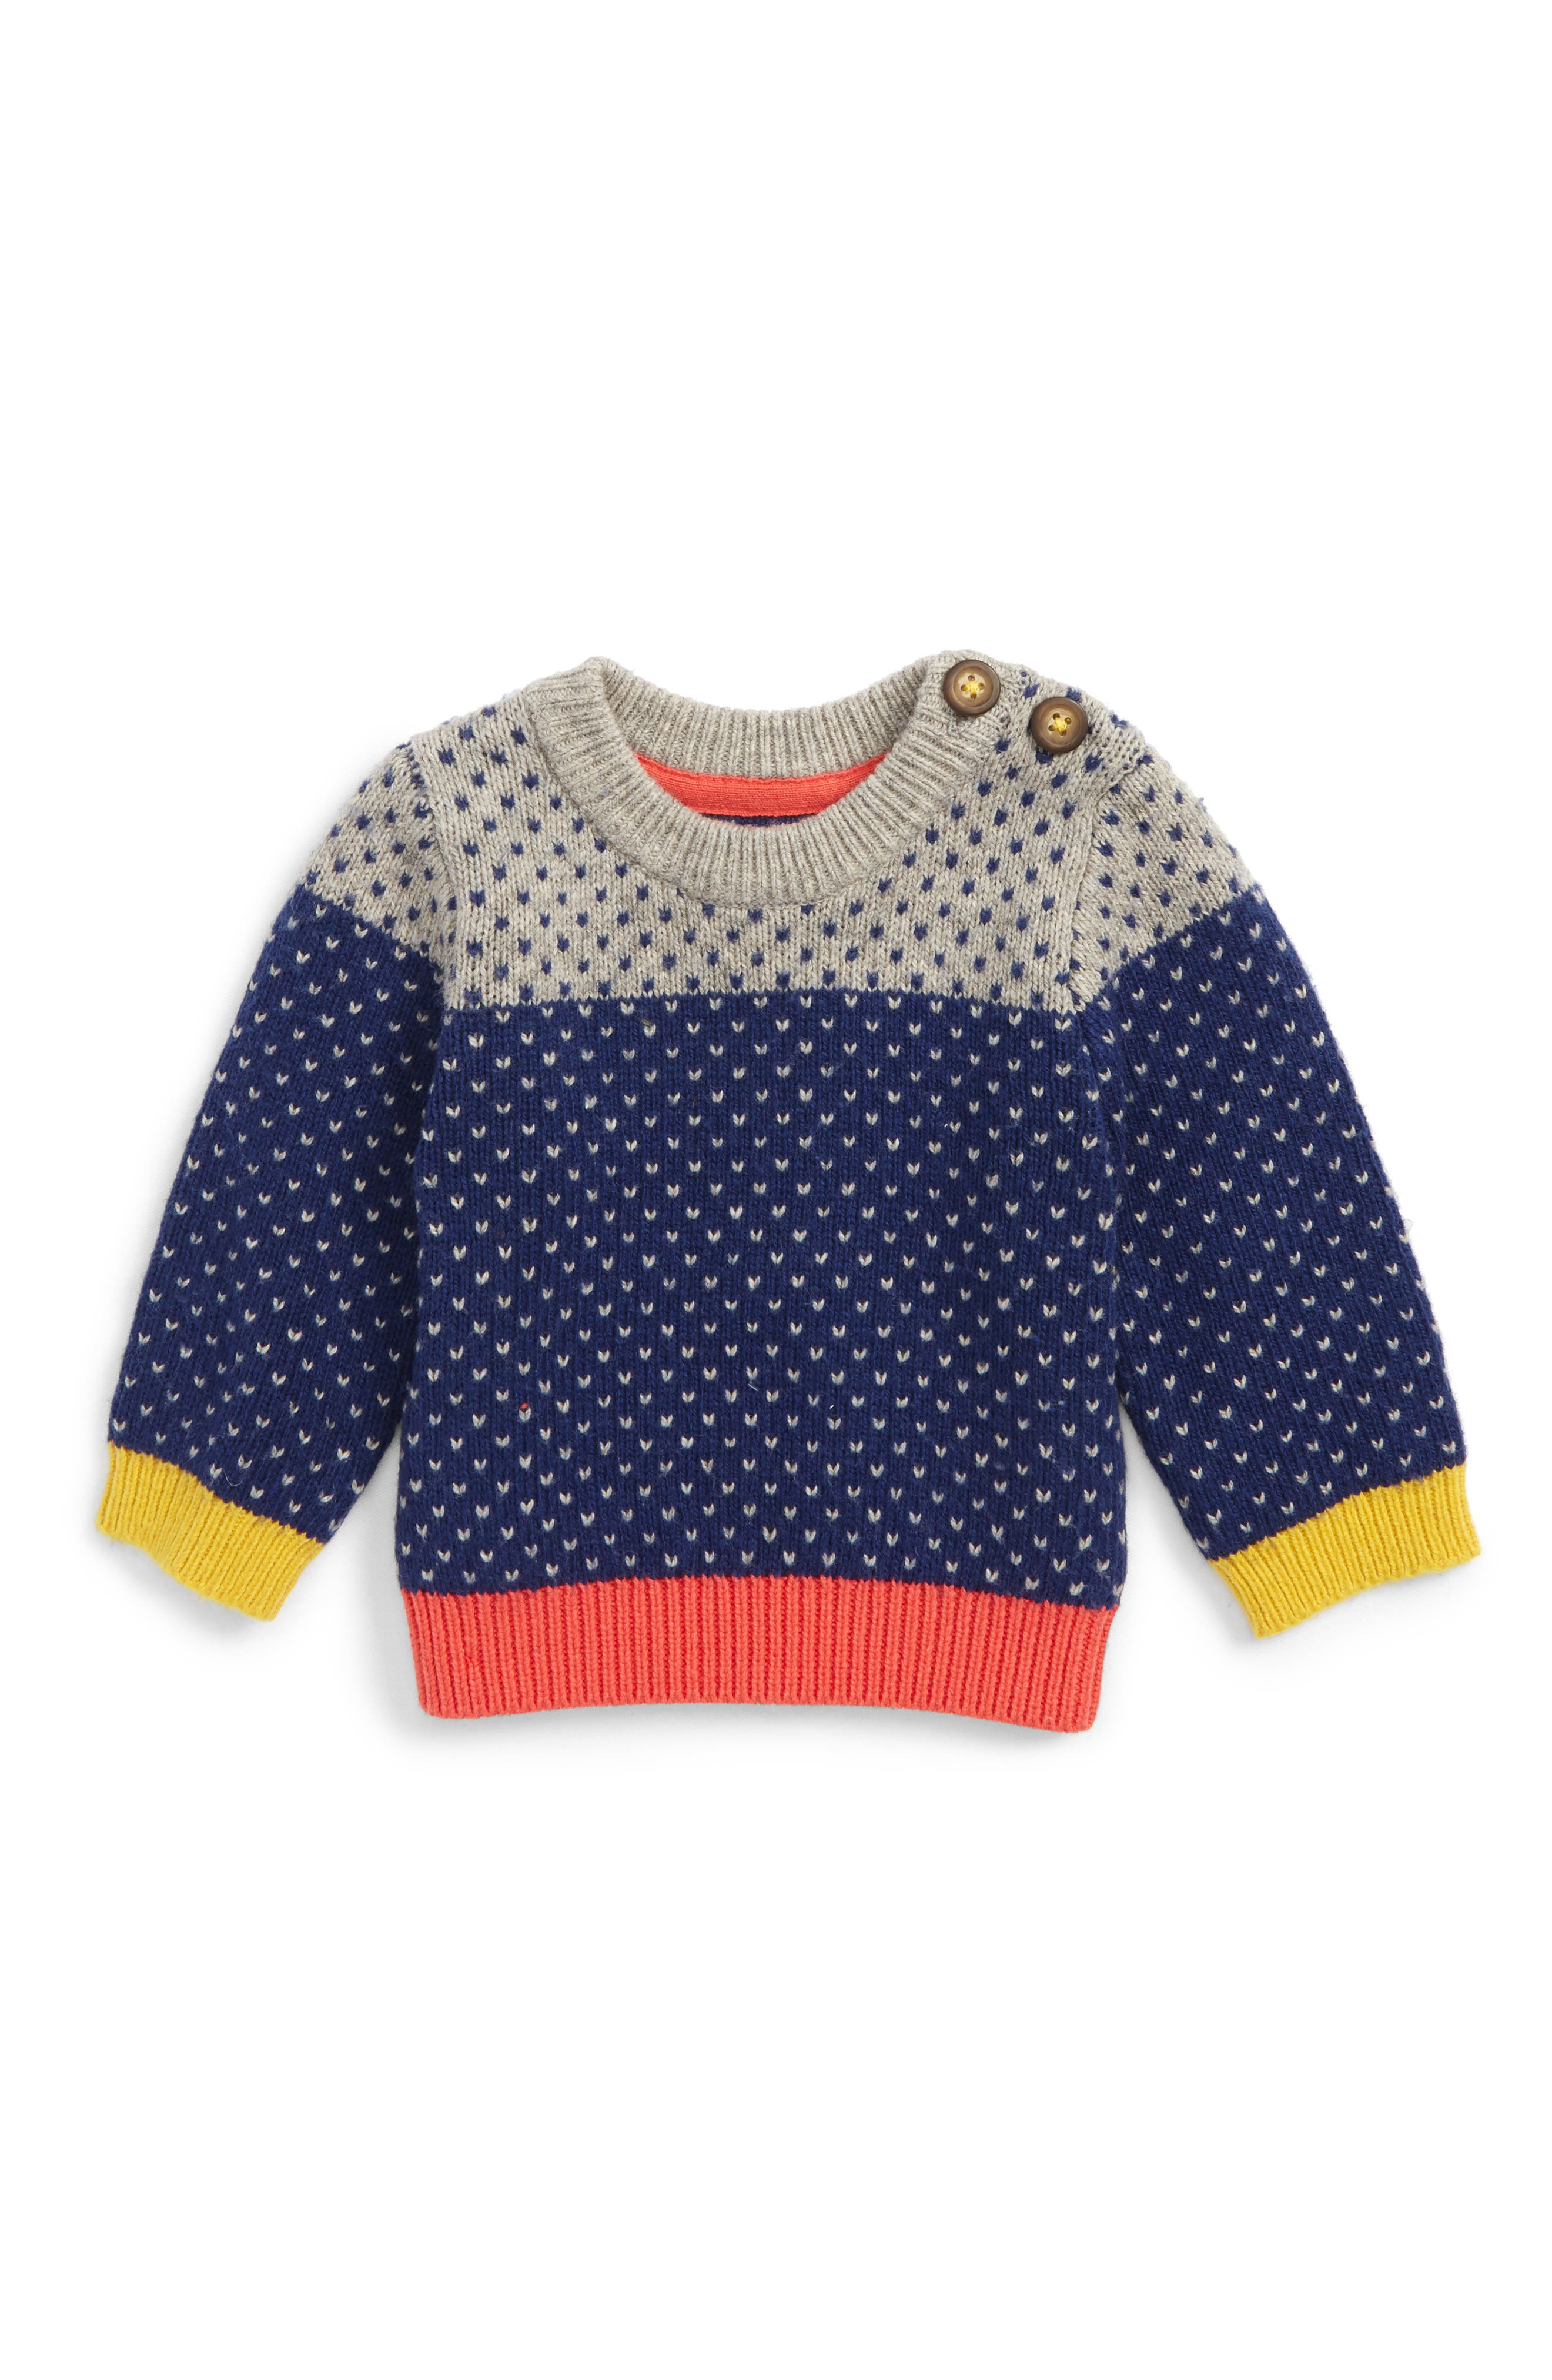 Alternate Image 1 Selected - Boden Colorblock Sweater (Baby Boys & Toddler Boys)